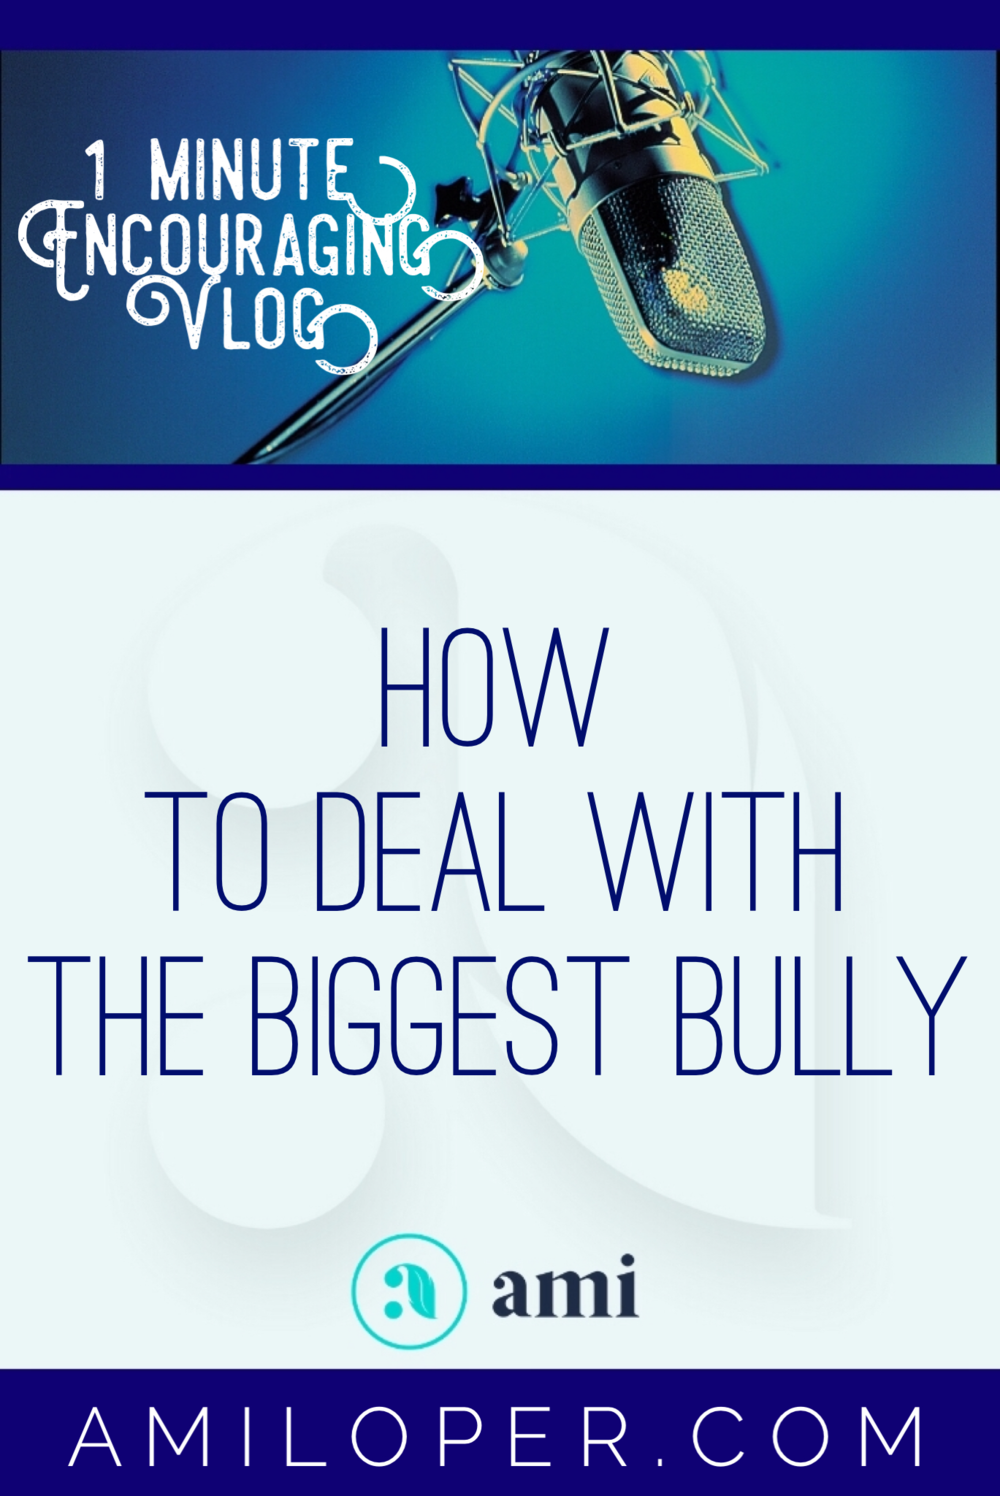 Many of us have dealt with bullying. But there is one bully who is the most dangerous. Do you know who it is? #Bully #Selfcare #SpeakLife #vlog